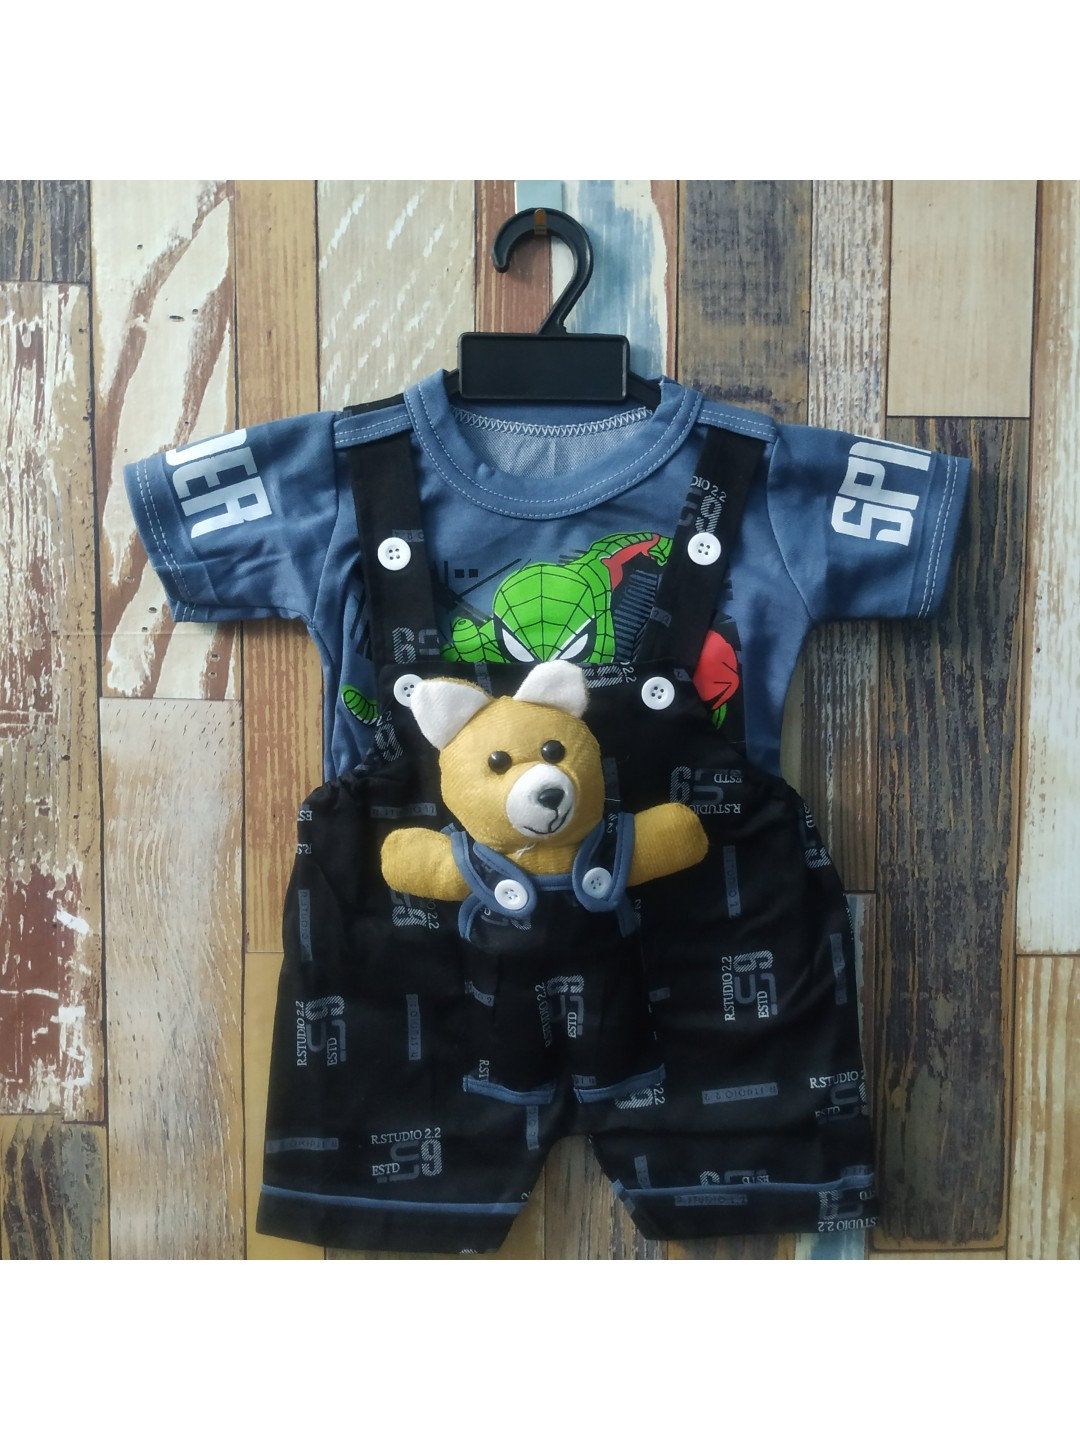 NDT Baby Boy & Baby Girl Teddy Bear Dungaree Set with T-shirt 0-1 Year    Clothes for Baby boy and Girl